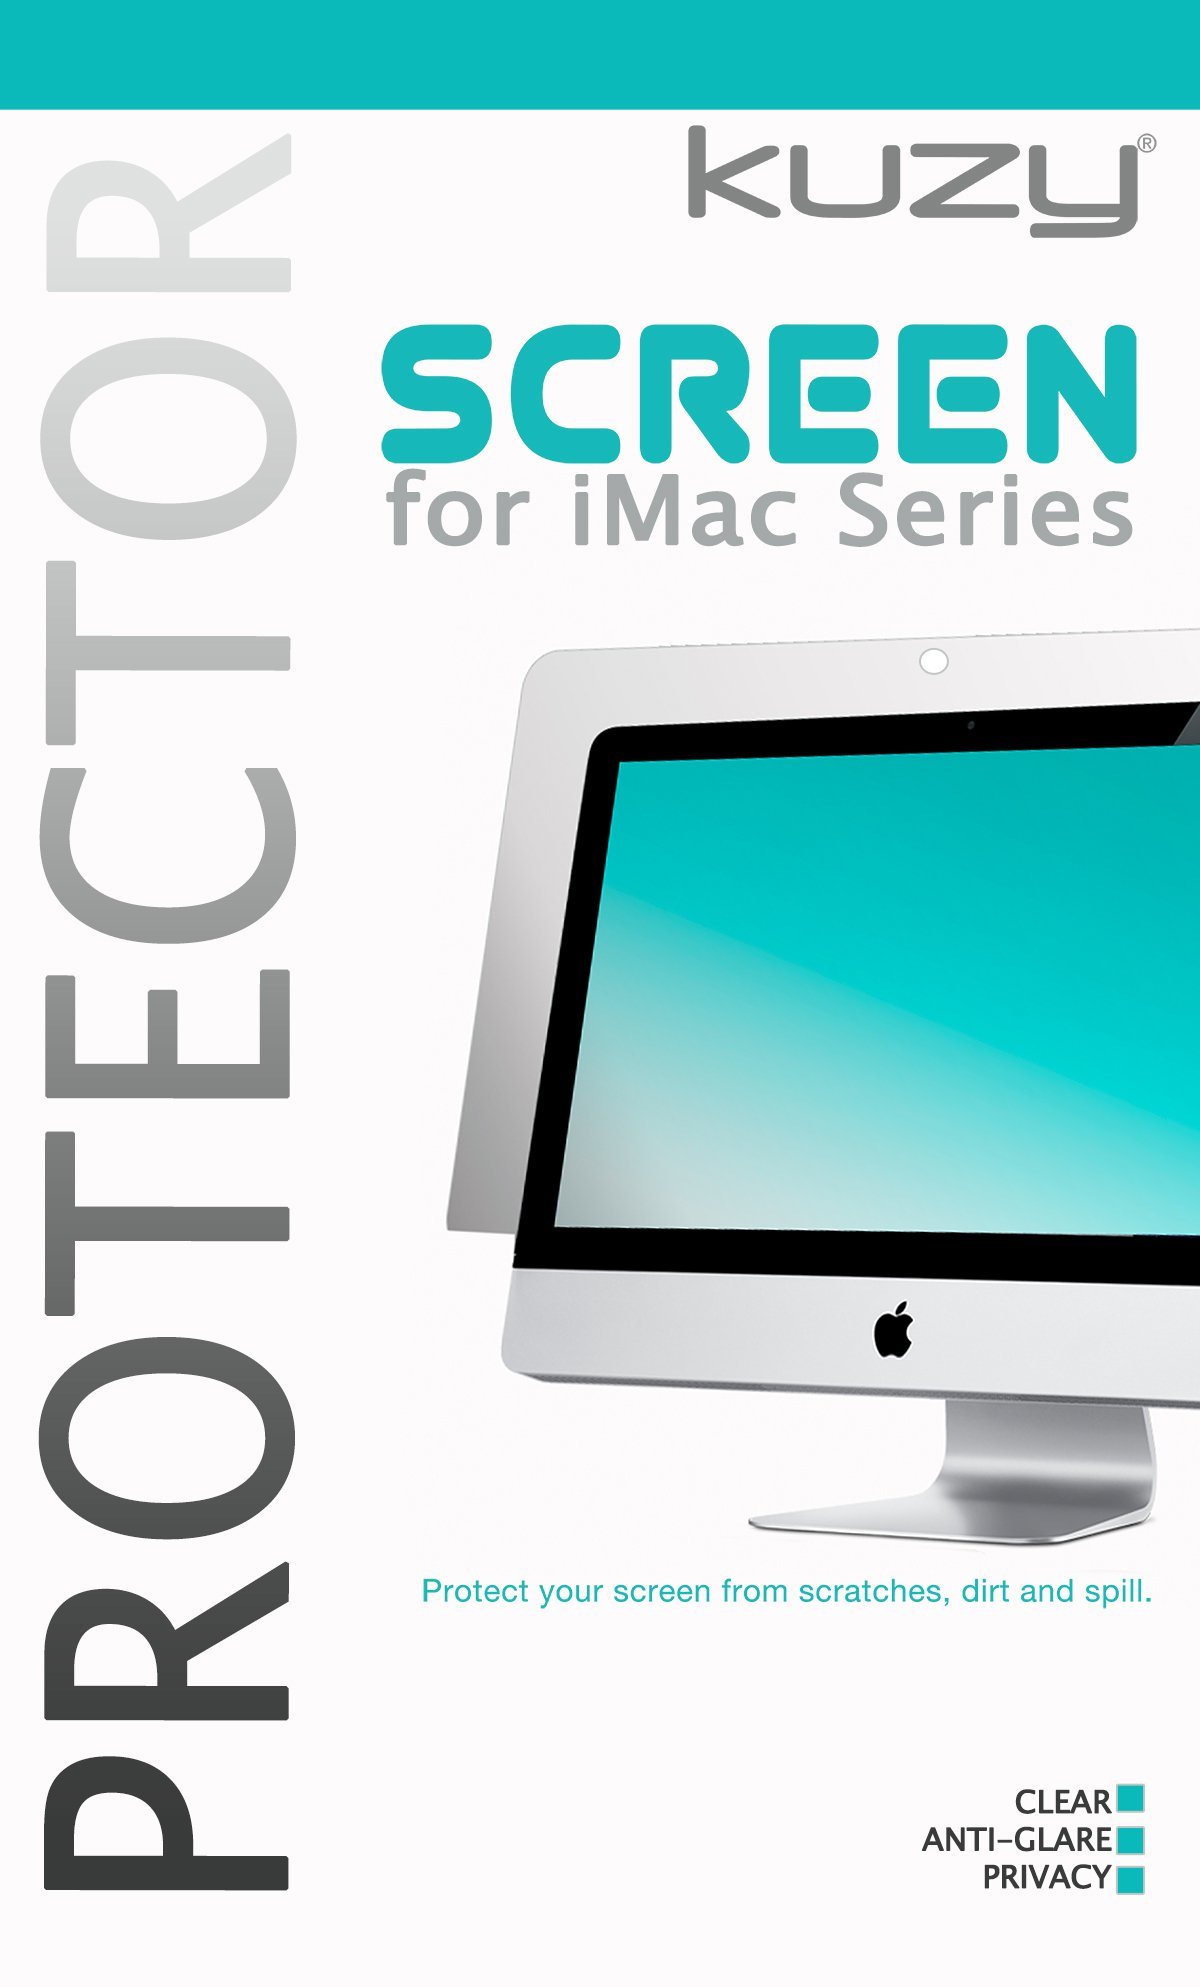 Kuzy - Anti-Glare Matte Screen Protector Filter for 27 inch iMac Desktop Display 27'' Model A1419 A1312 and iMac Pro 27-inch A1862 - Anti-Glare